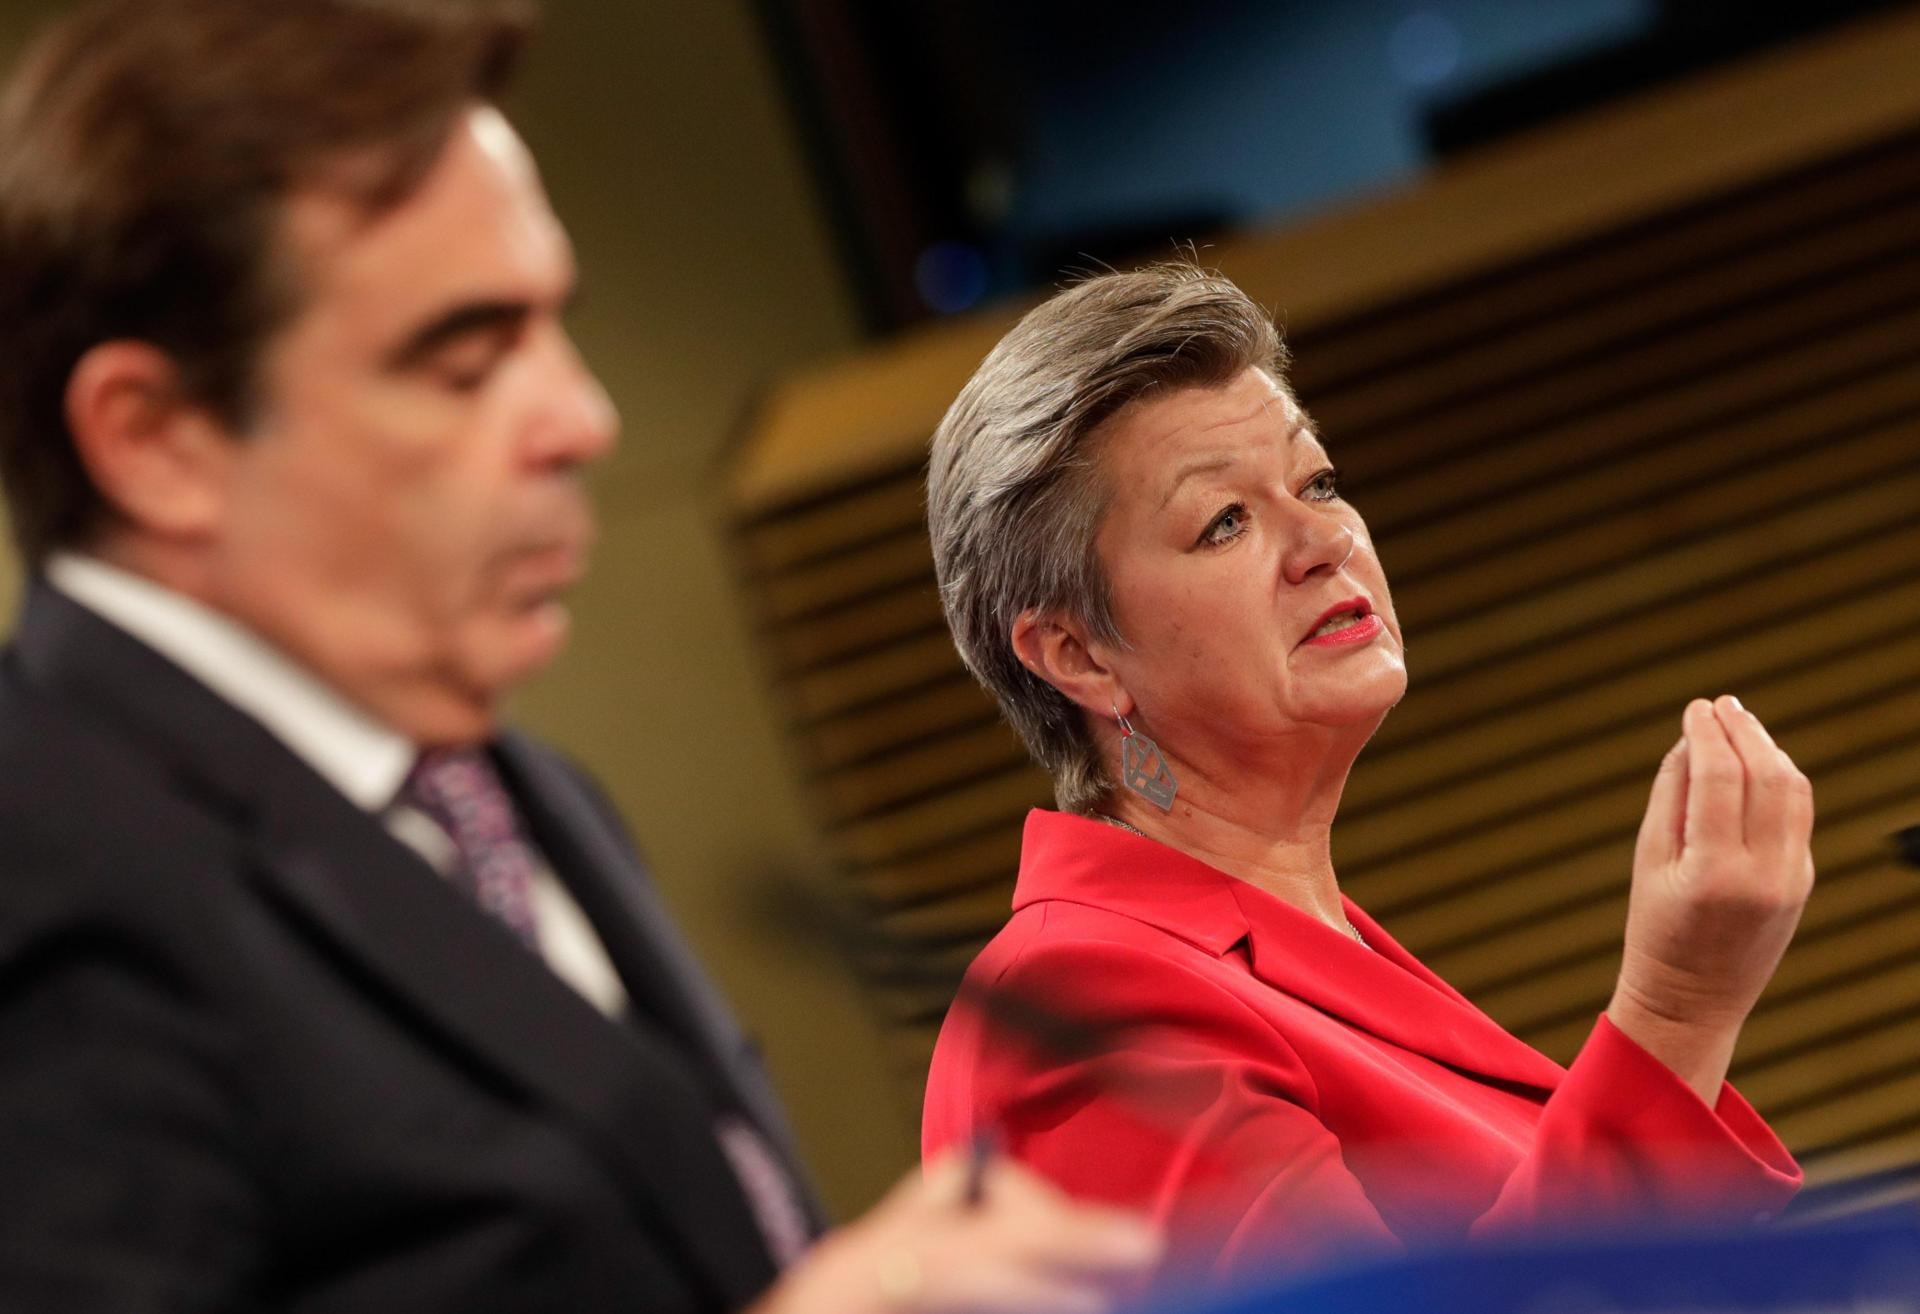 European Commissioner for Home Affairs Ylva Johansson (R) speaks as European Commissioner for Promoting our European Way of Life Margaritas Schinas (L) listens during a press conference on a New Pact for Migration and Asylum at the European Commission in Brussels on September 23, 2020. Photo: AFP